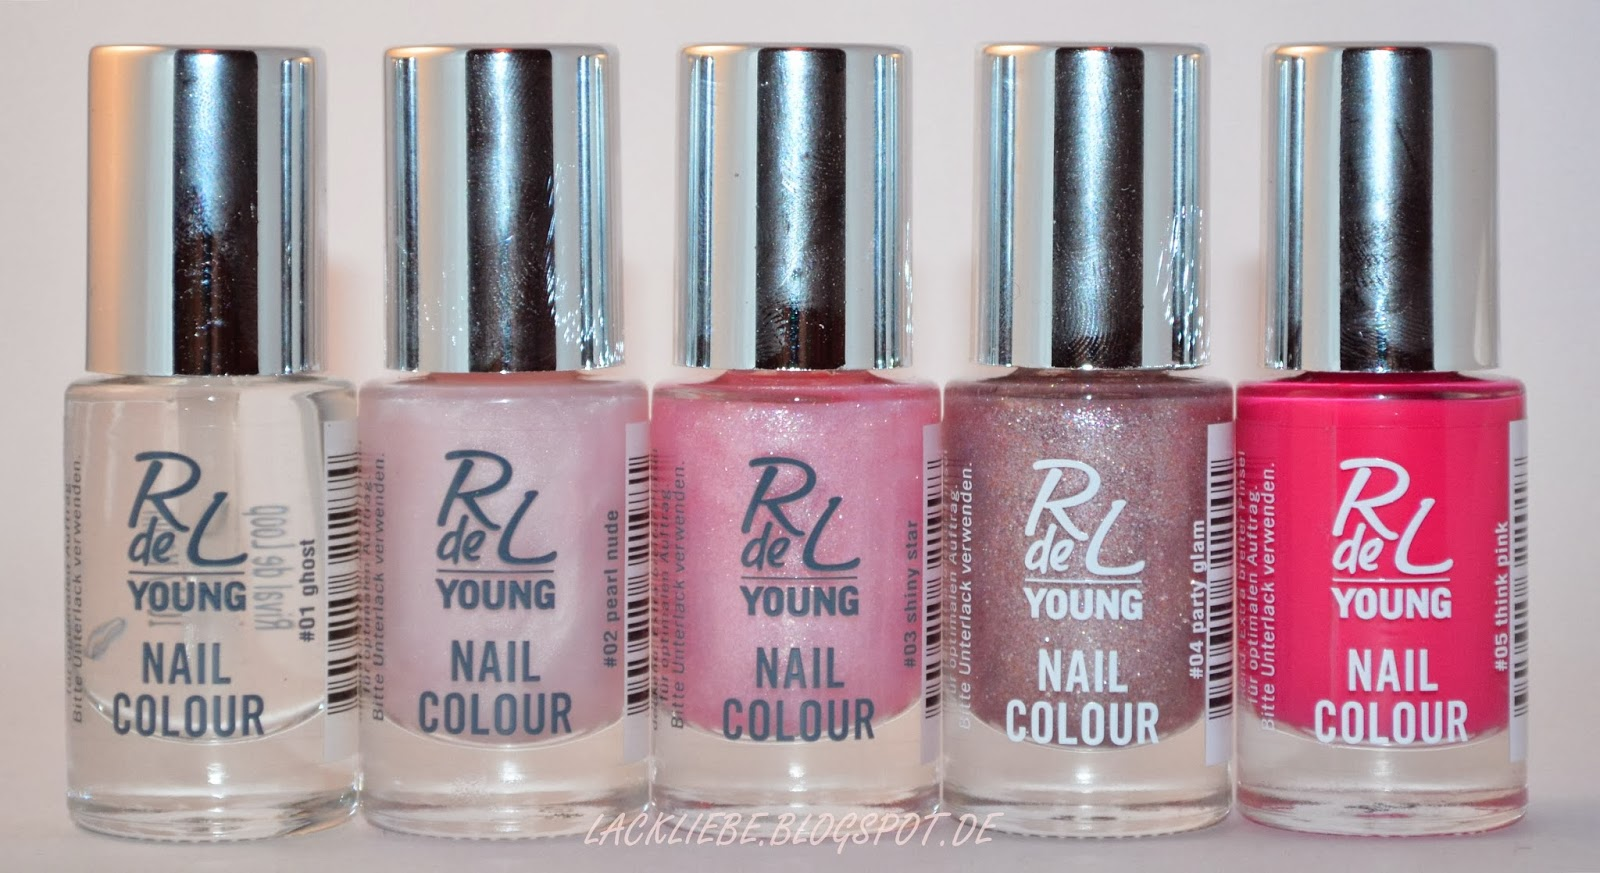 Lackliebe: Rival de Loop Young Nagellack Swatches #1...................